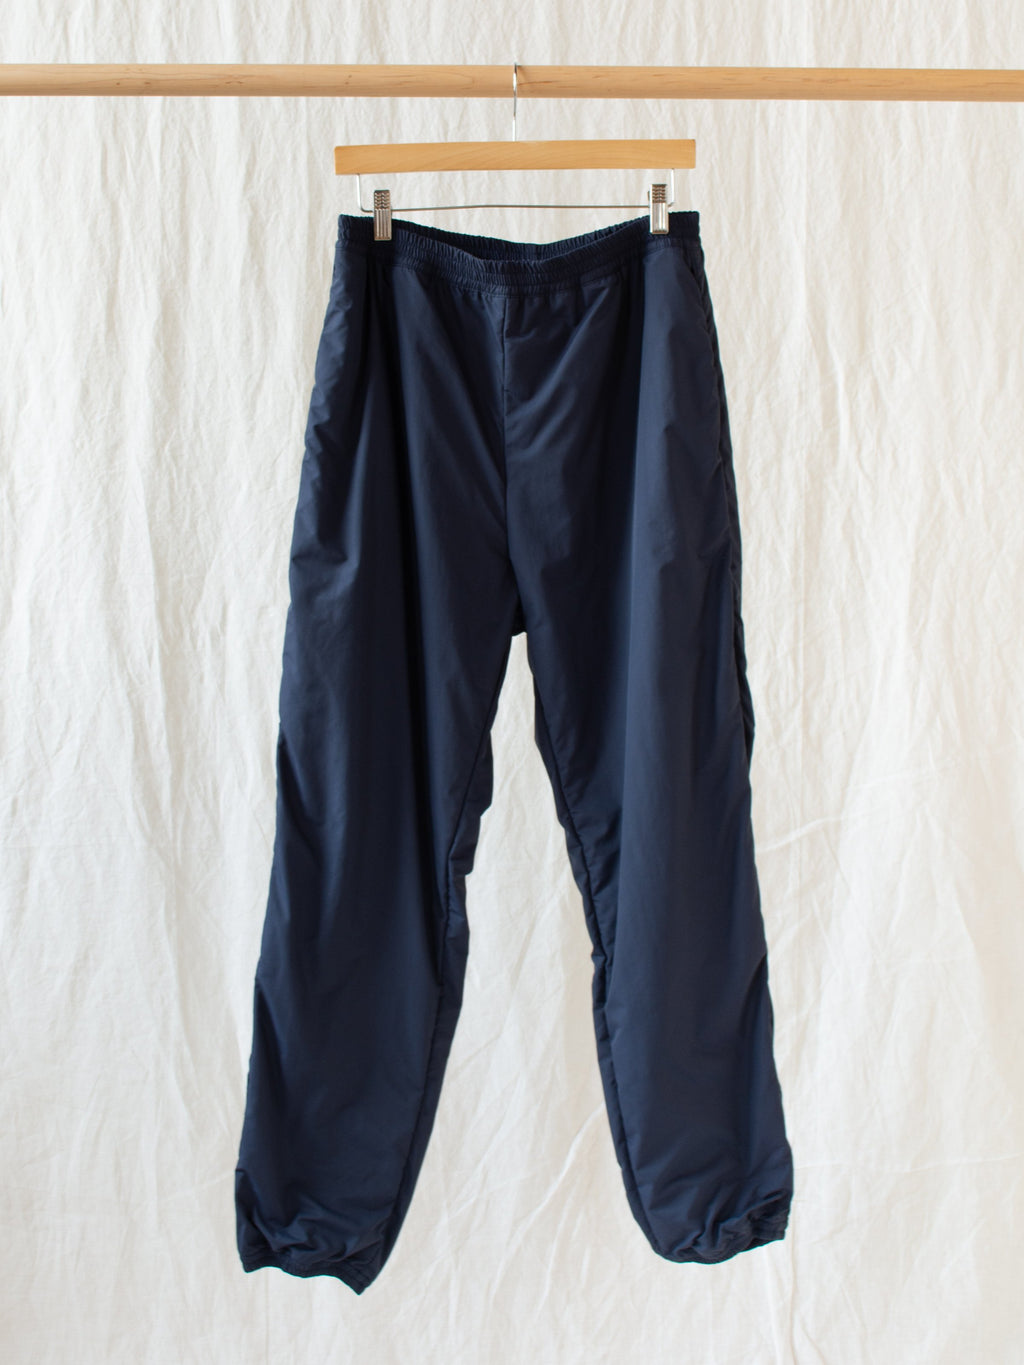 Namu Shop - paa Windbreaker Pant - Navy